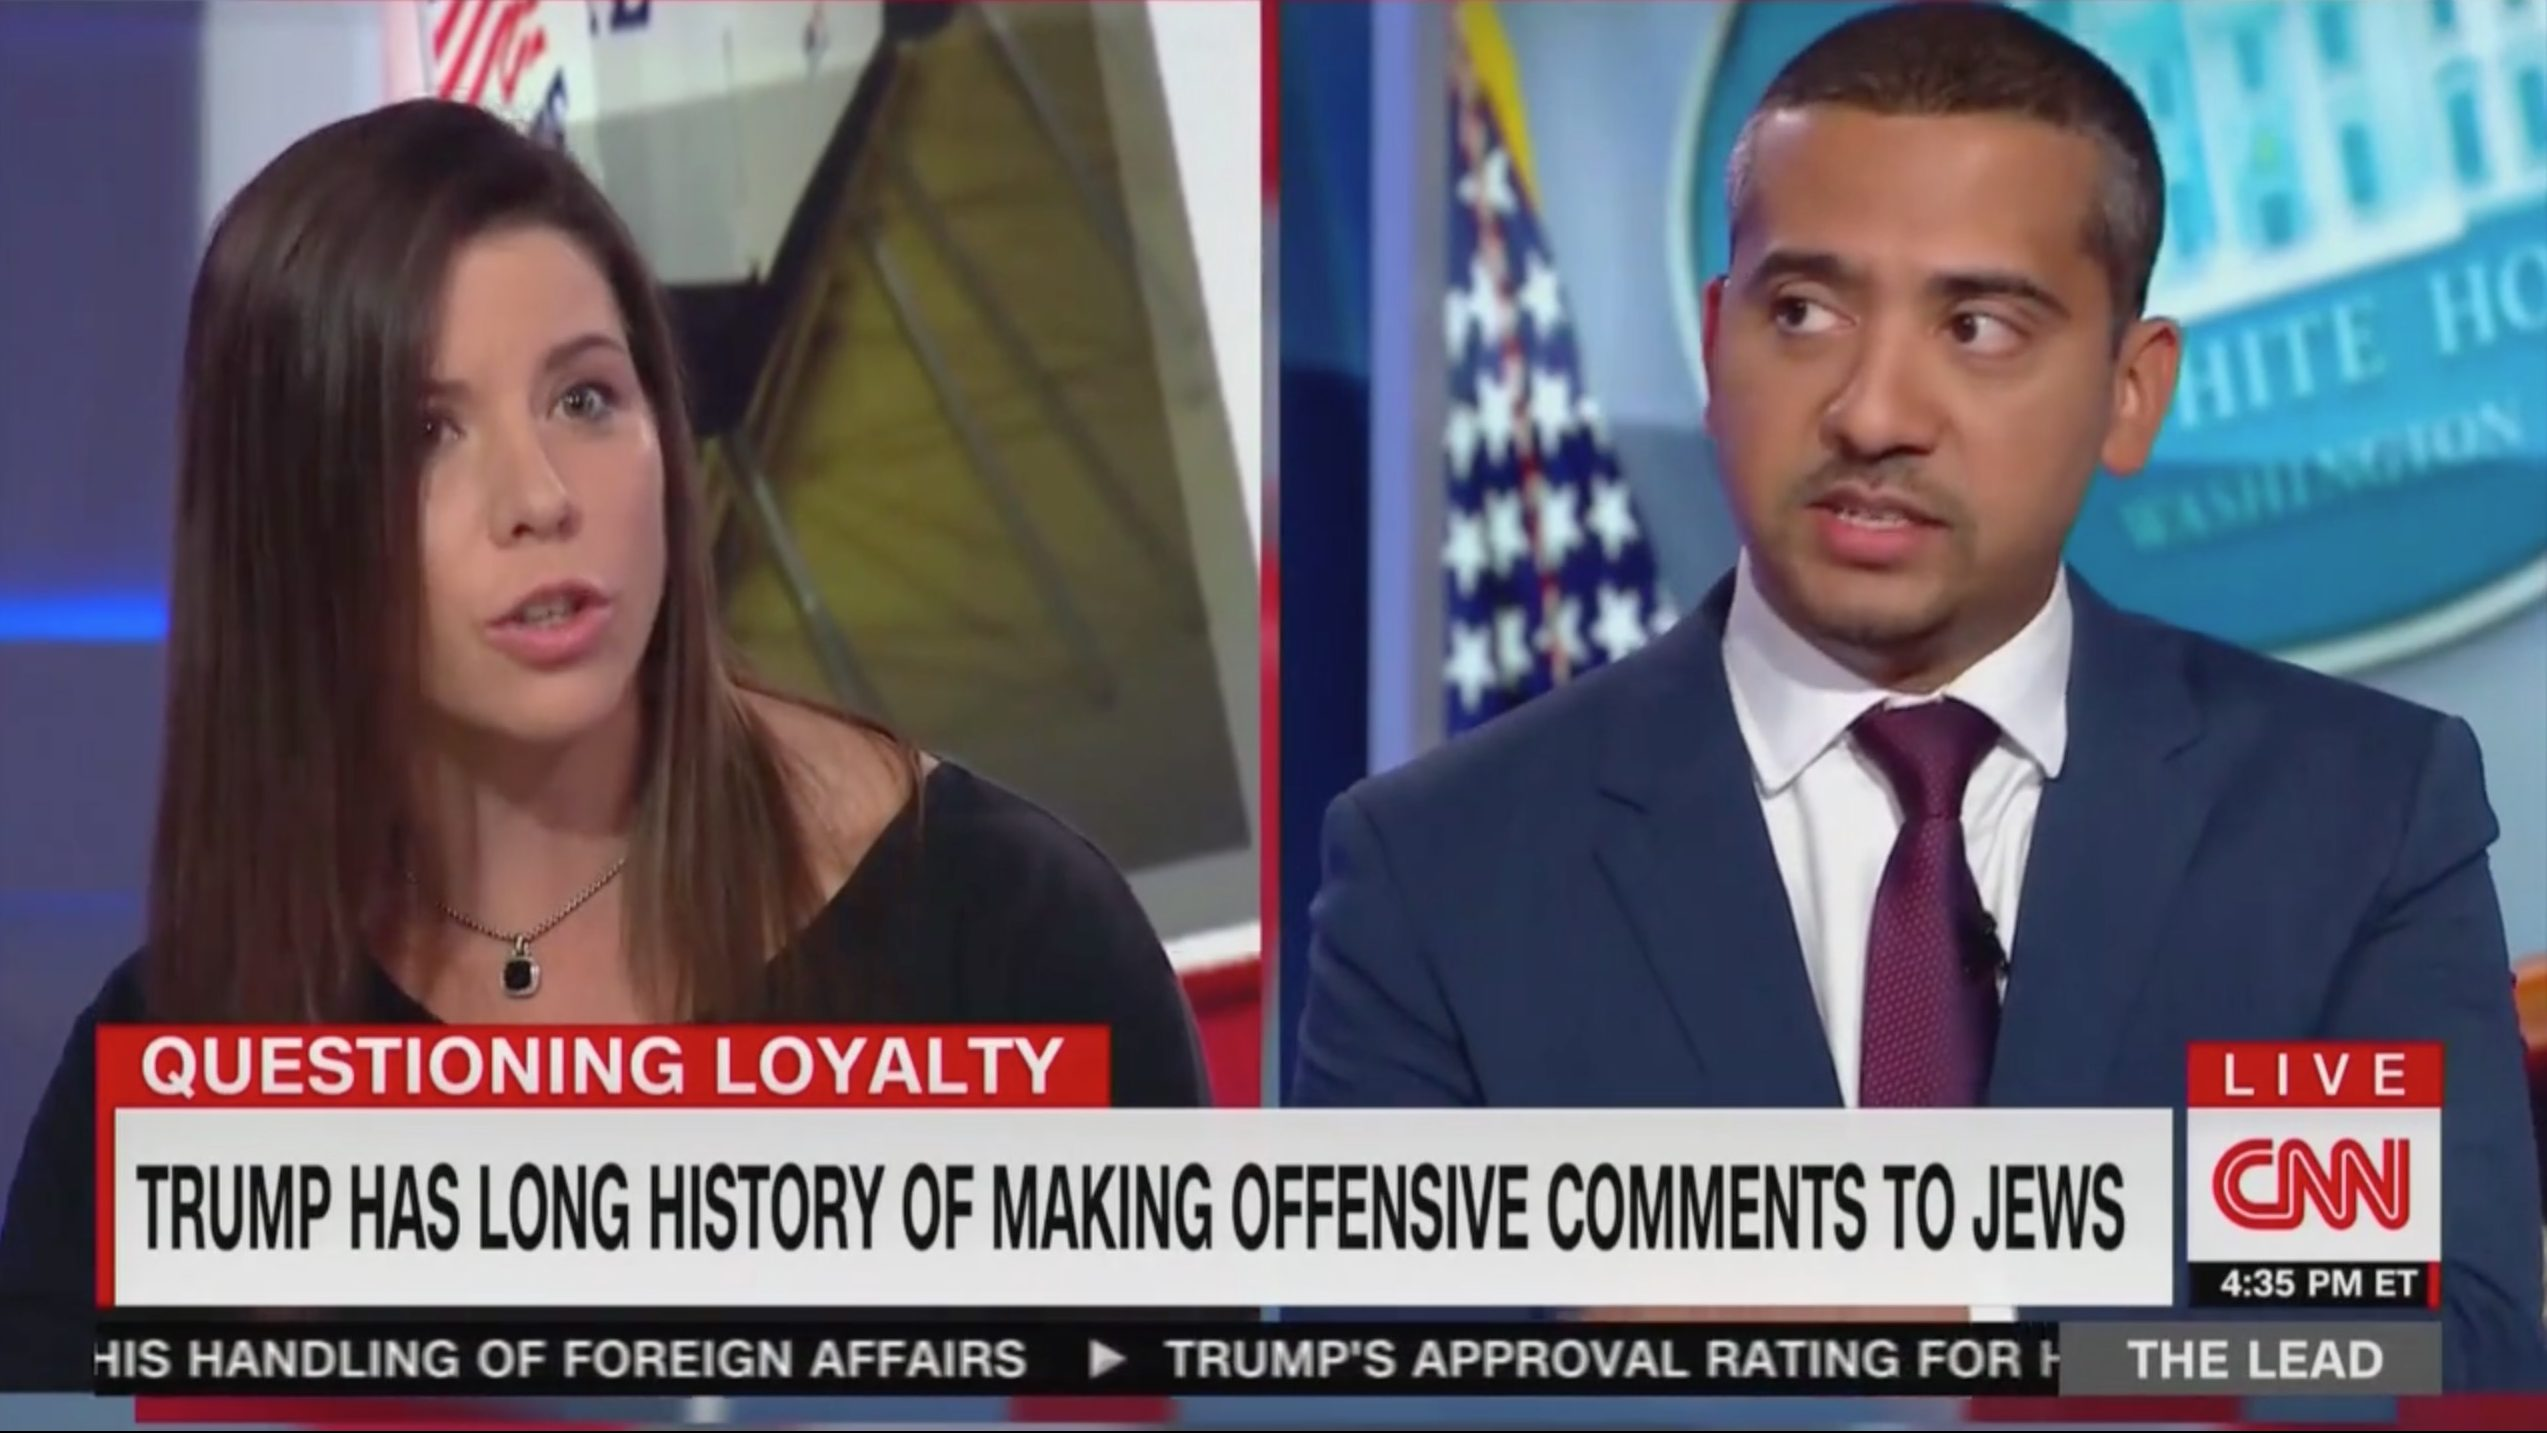 CNN Debate Gets Tense After Panelist Compares The Squad's Comments to Trump's: 'Come On! Let's Not Do a Both Sides Here!'